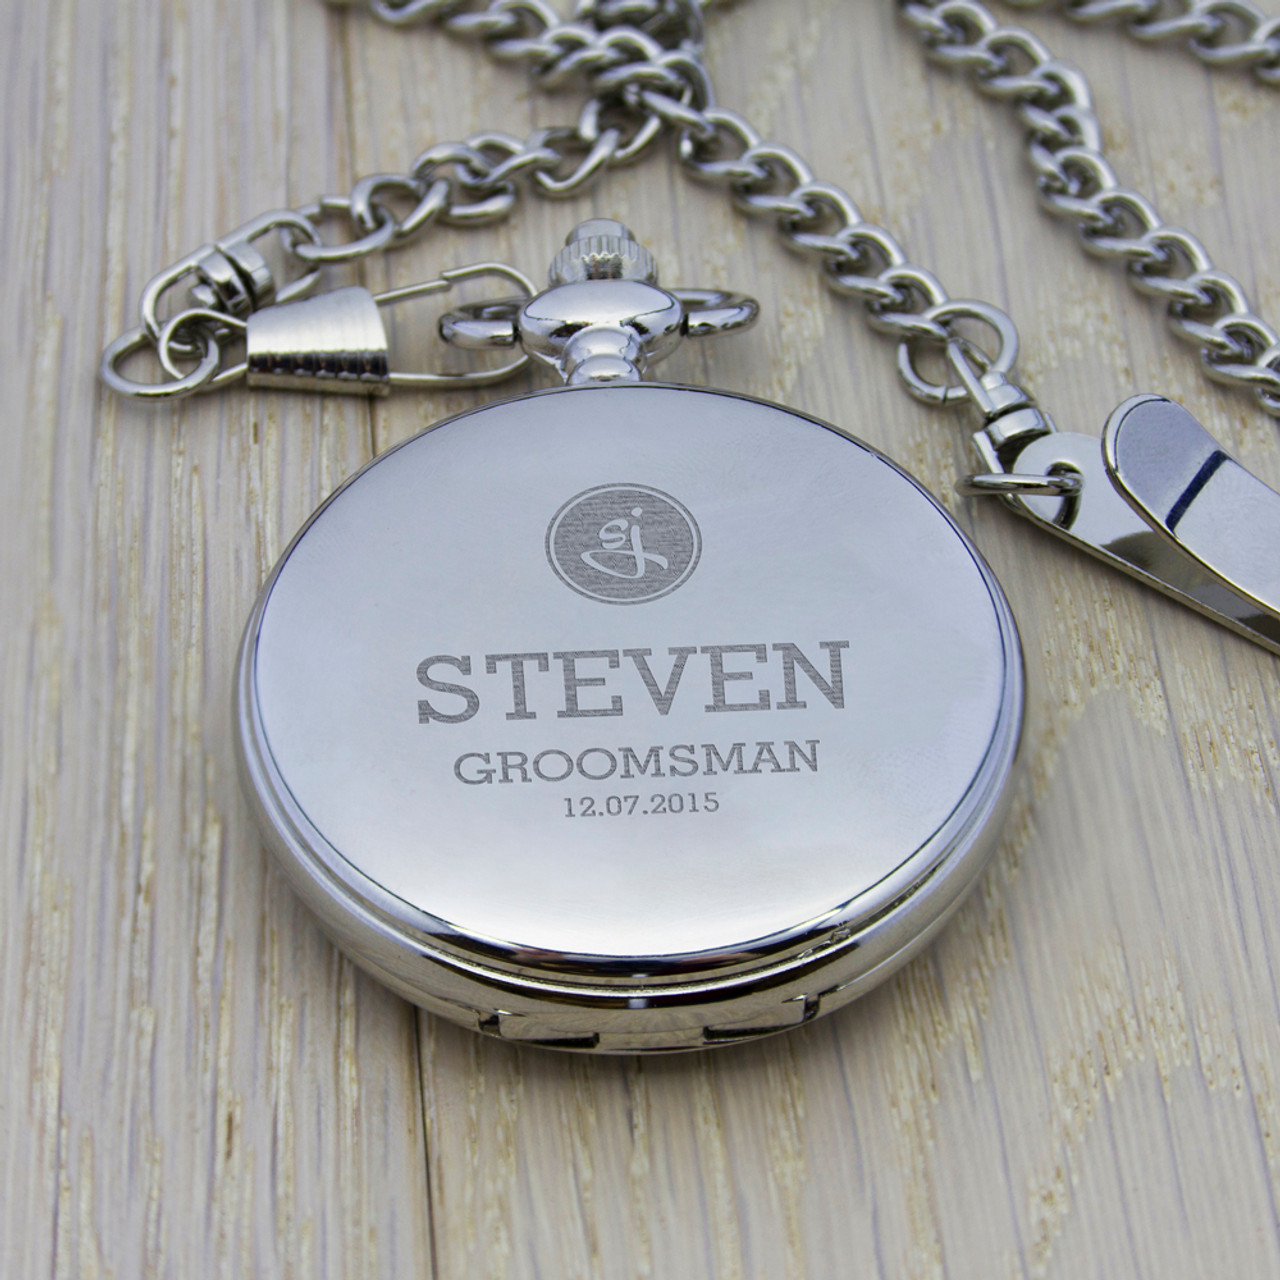 734a09e0b Stylish engraved pocket watch is a fantastic gift for a groomsman, best man  or even